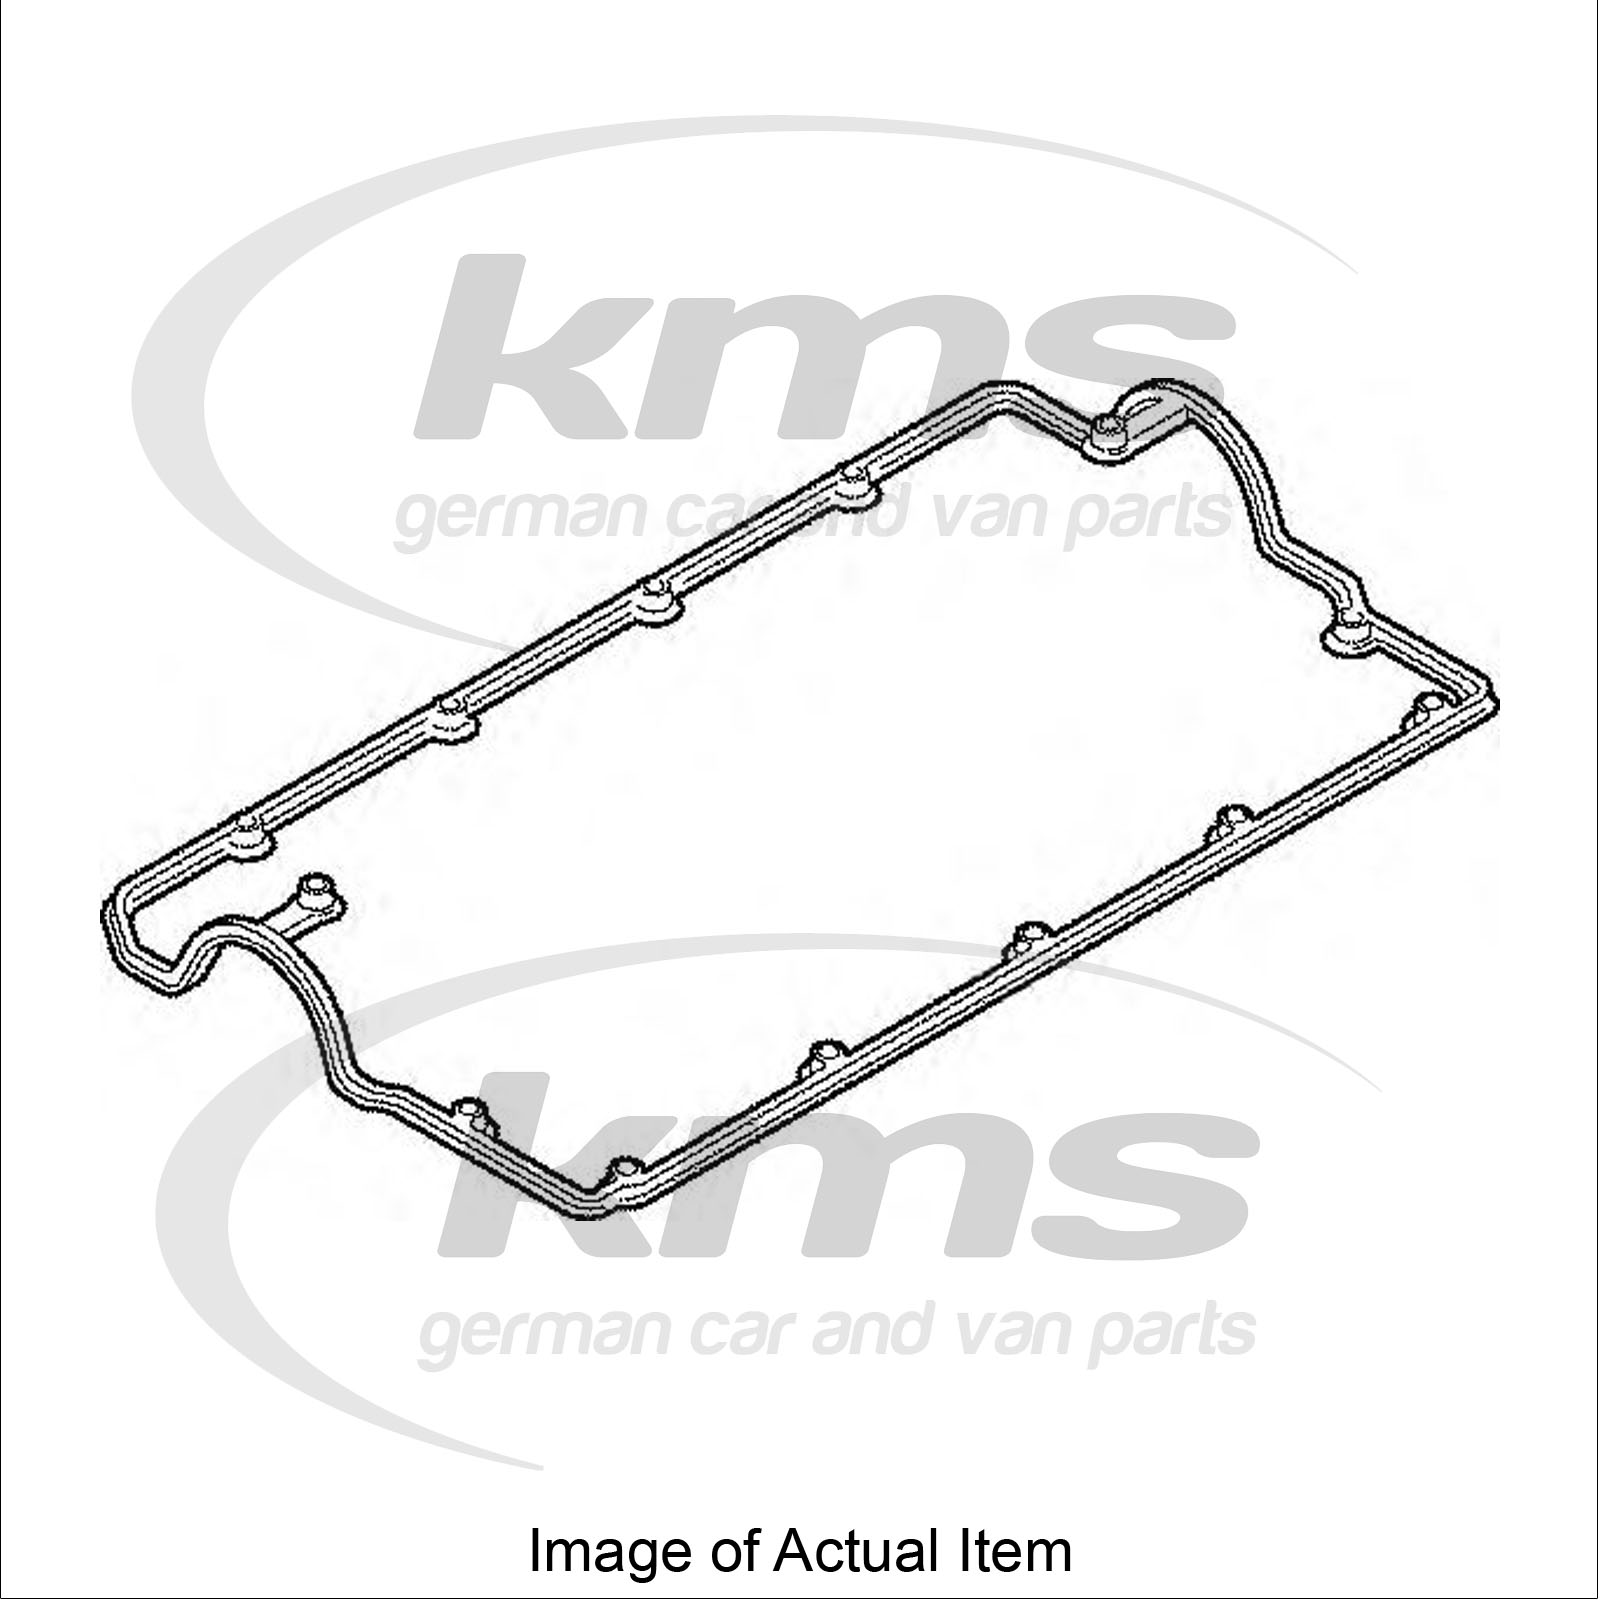 Valve Cover Gasket Vw Golf V 1k1 1 9 Tdi 4motion